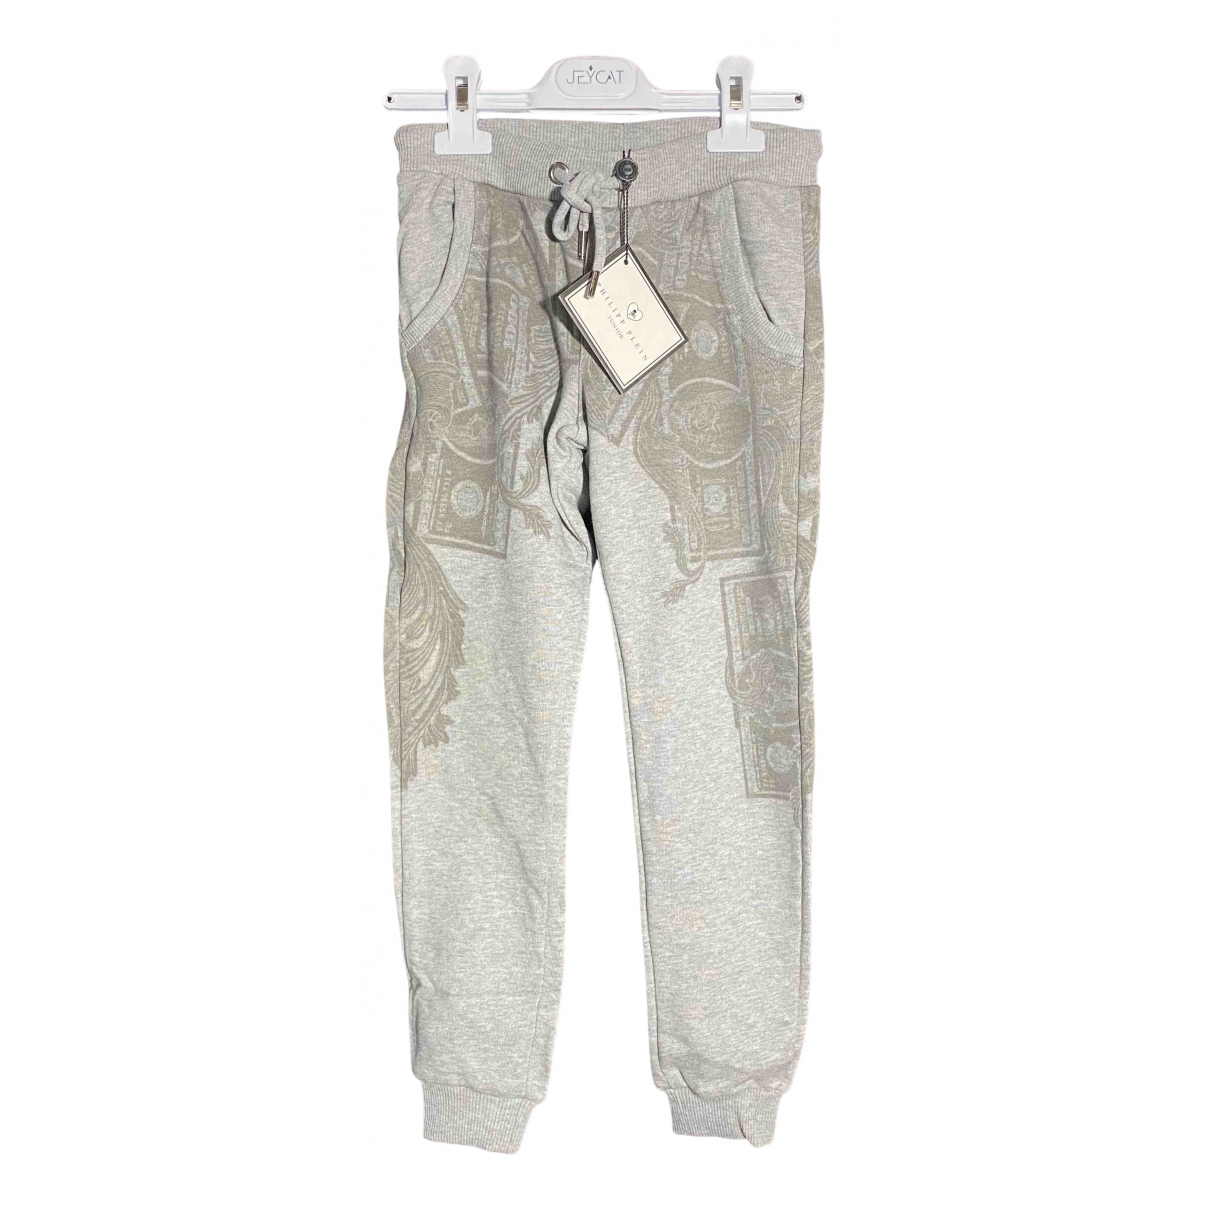 Philipp Plein N Grey Cotton Trousers for Kids 10 years - up to 142cm FR